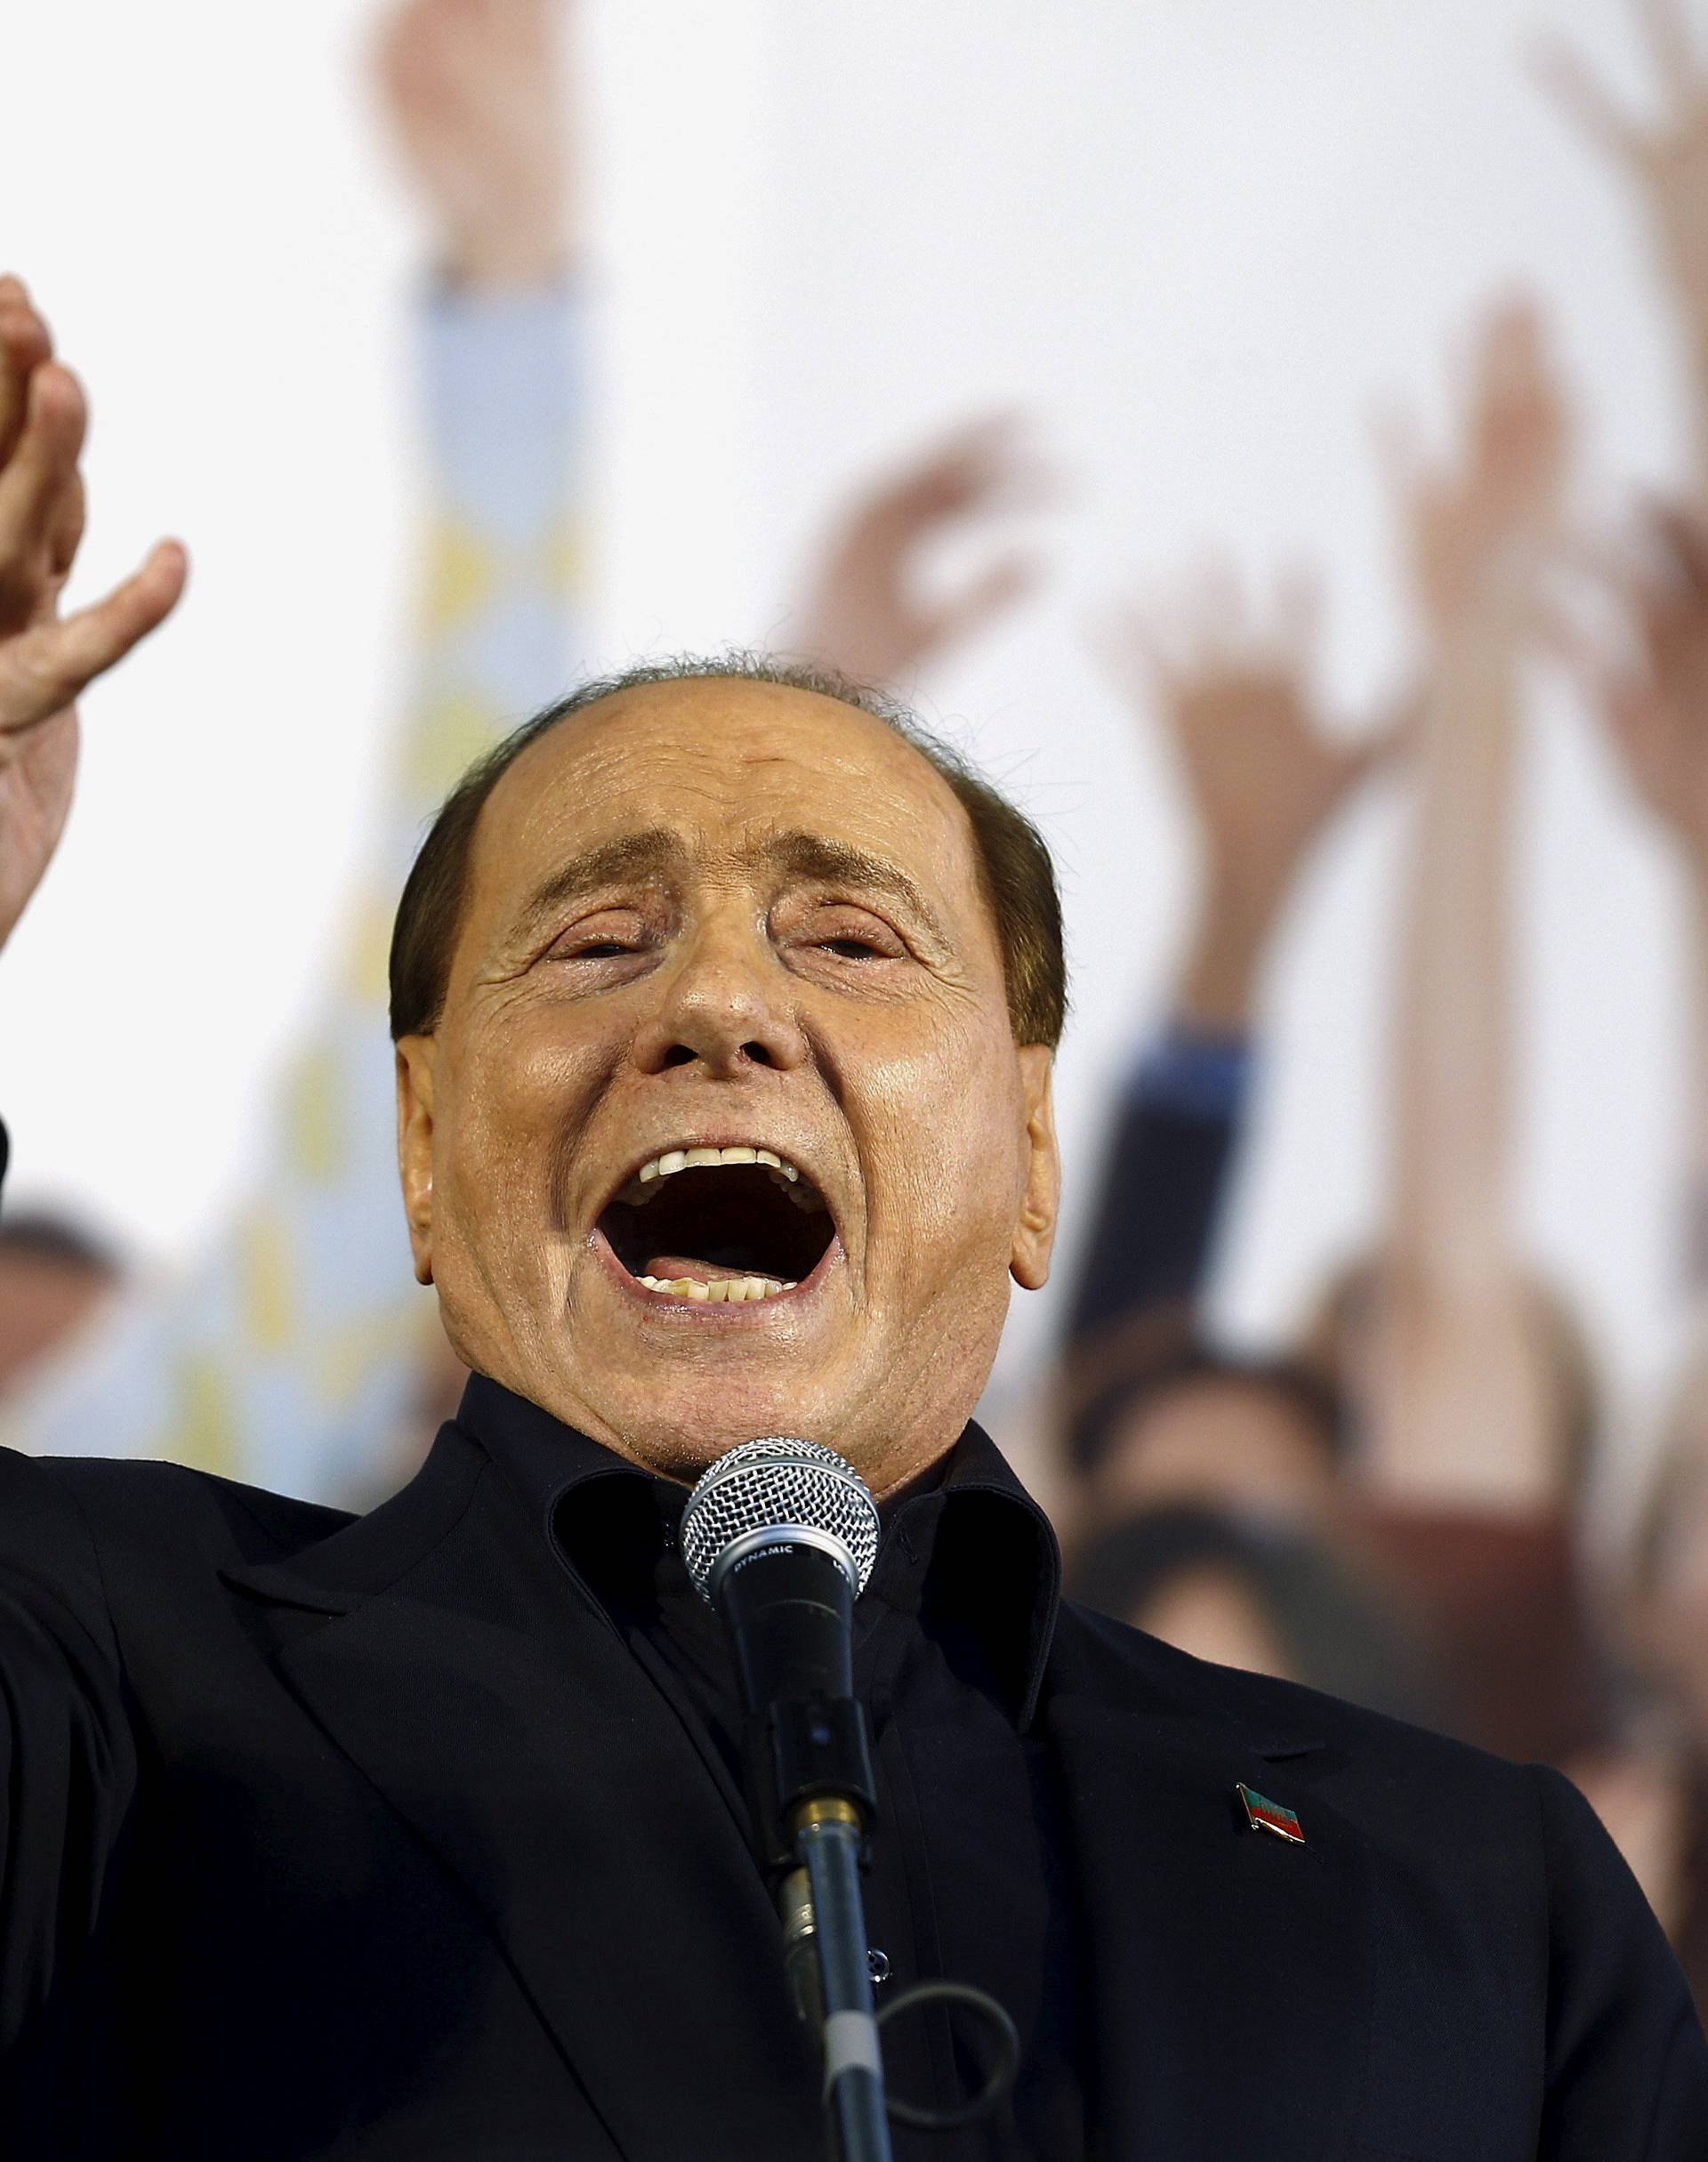 FILE PHOTO: Forza Italia party (PDL) leader Berlusconi speaks during Northern League rally in Bologna